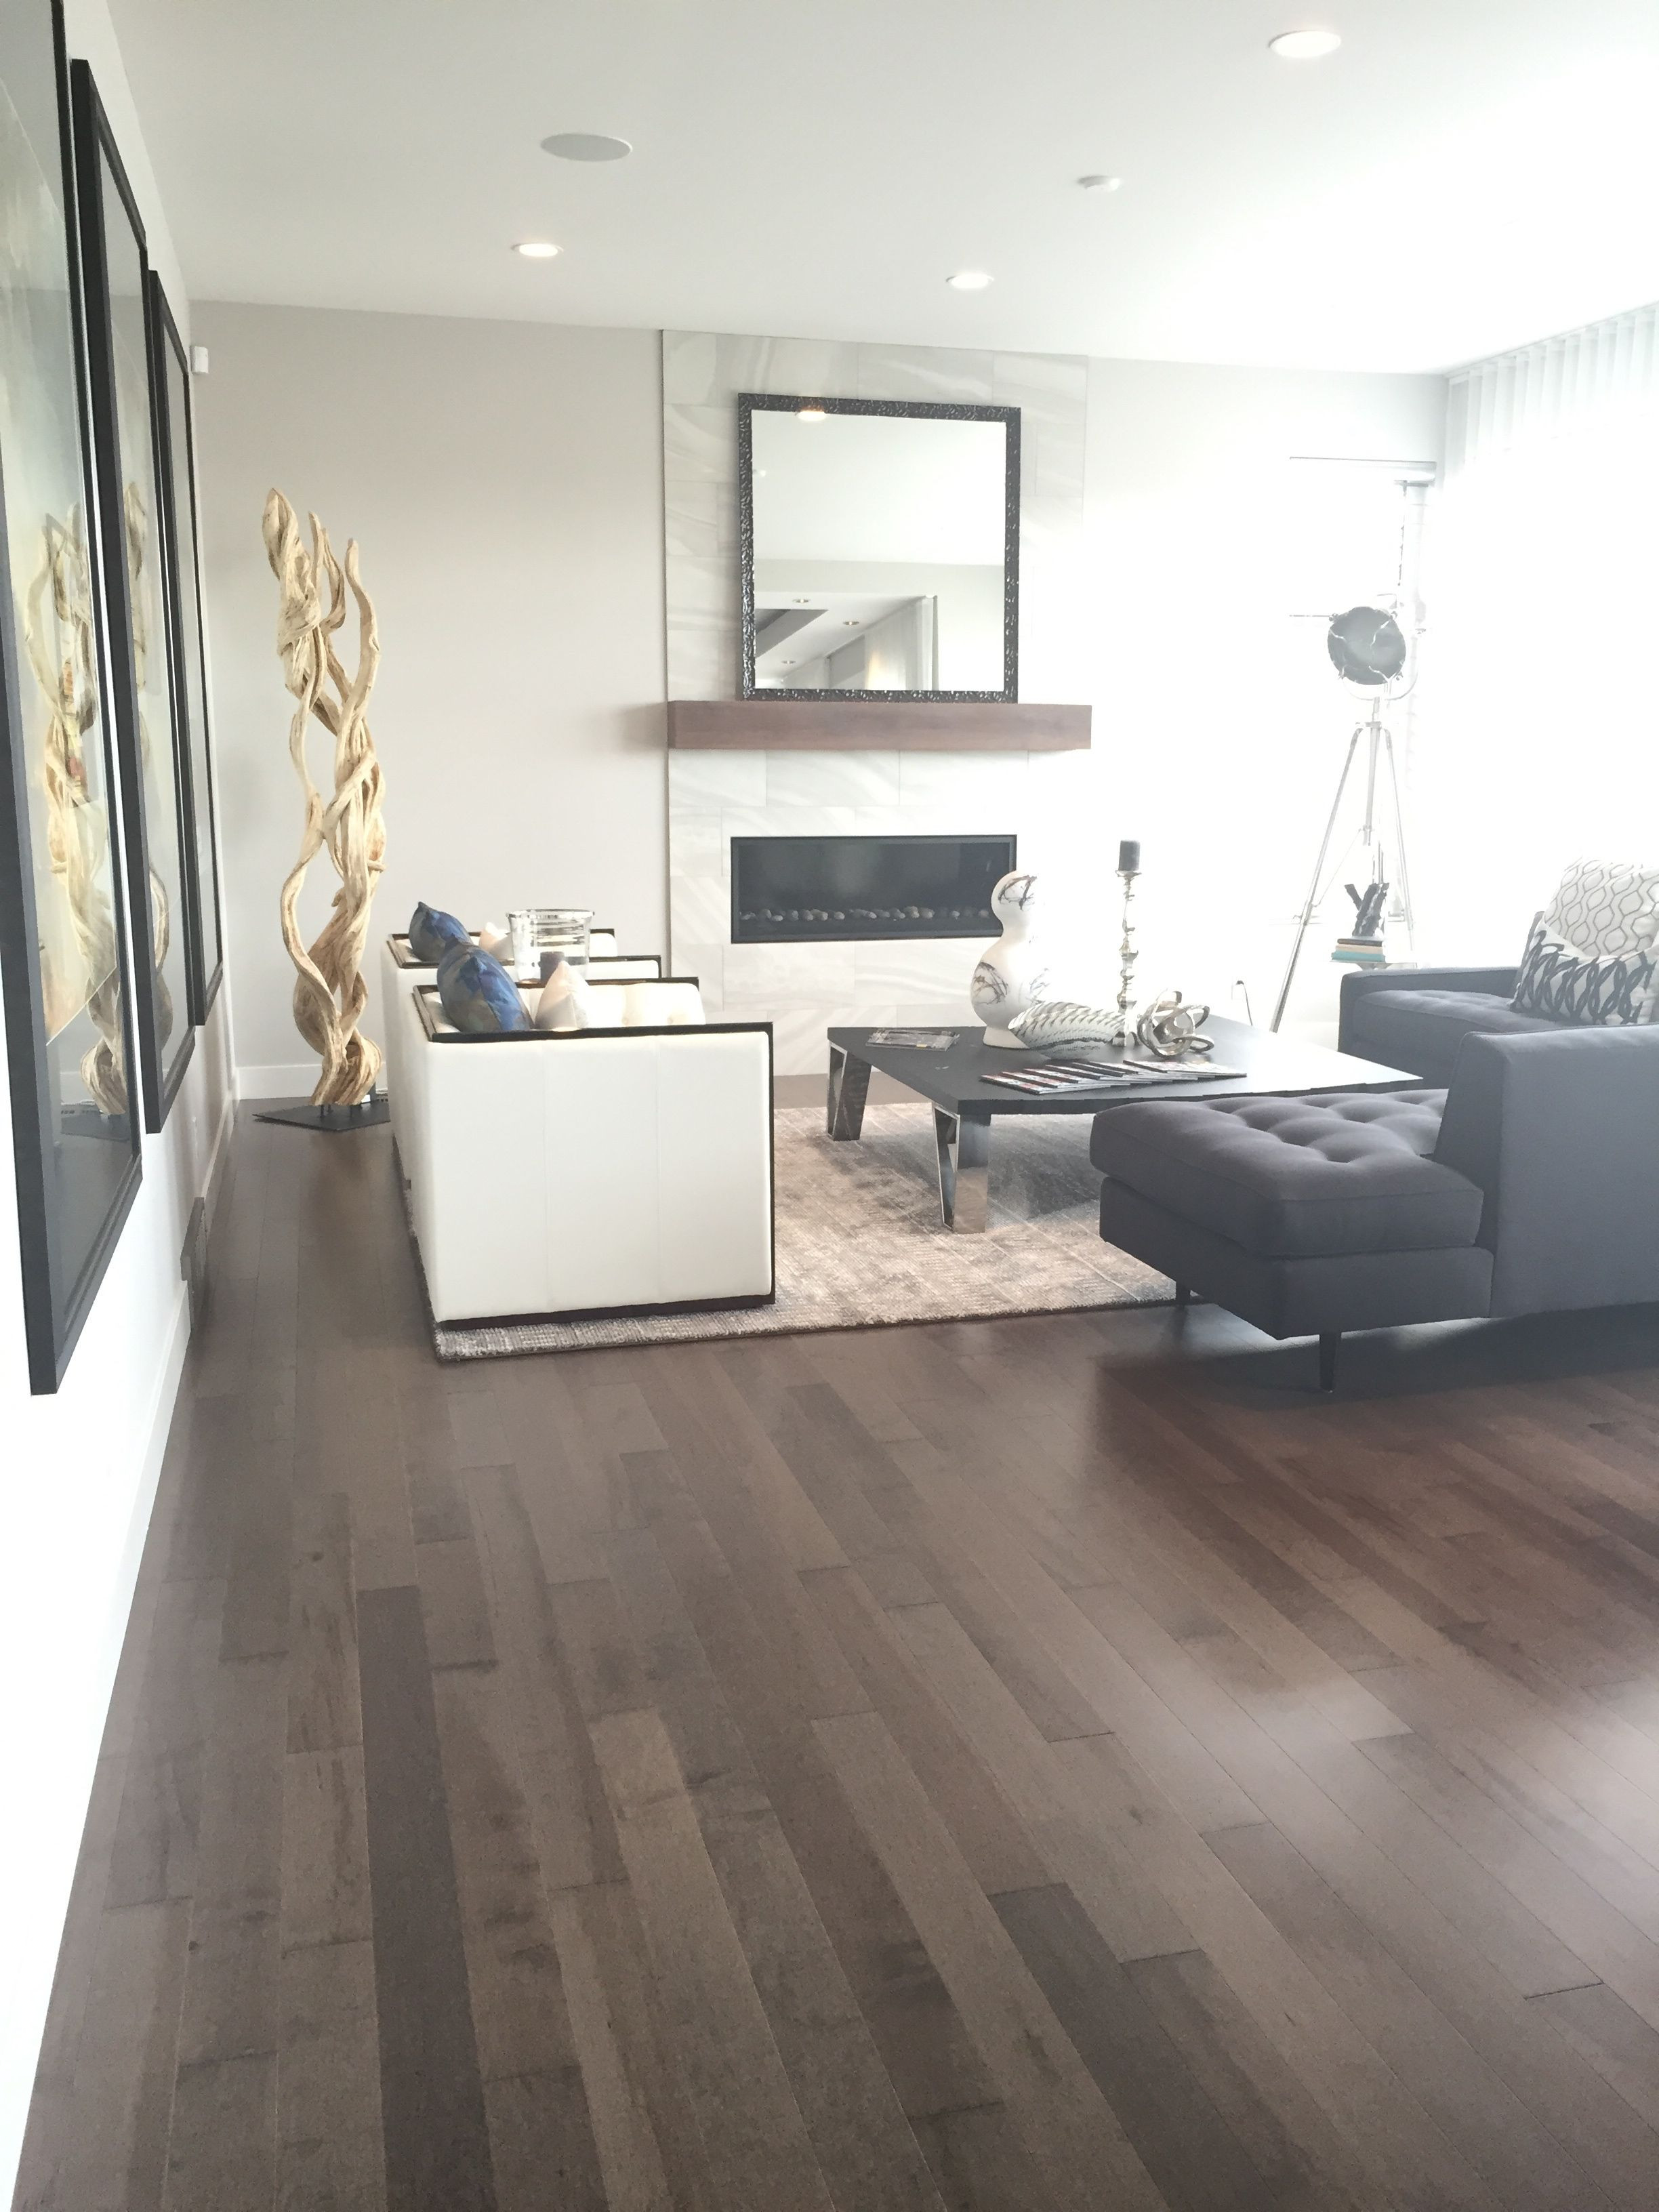 wholesale unfinished hardwood flooring of smoky grey essential hard maple tradition lauzon hardwood pertaining to beautiful living room from the cantata showhome featuring lauzons smokey grey hard maple hardwood flooring from the essential collection